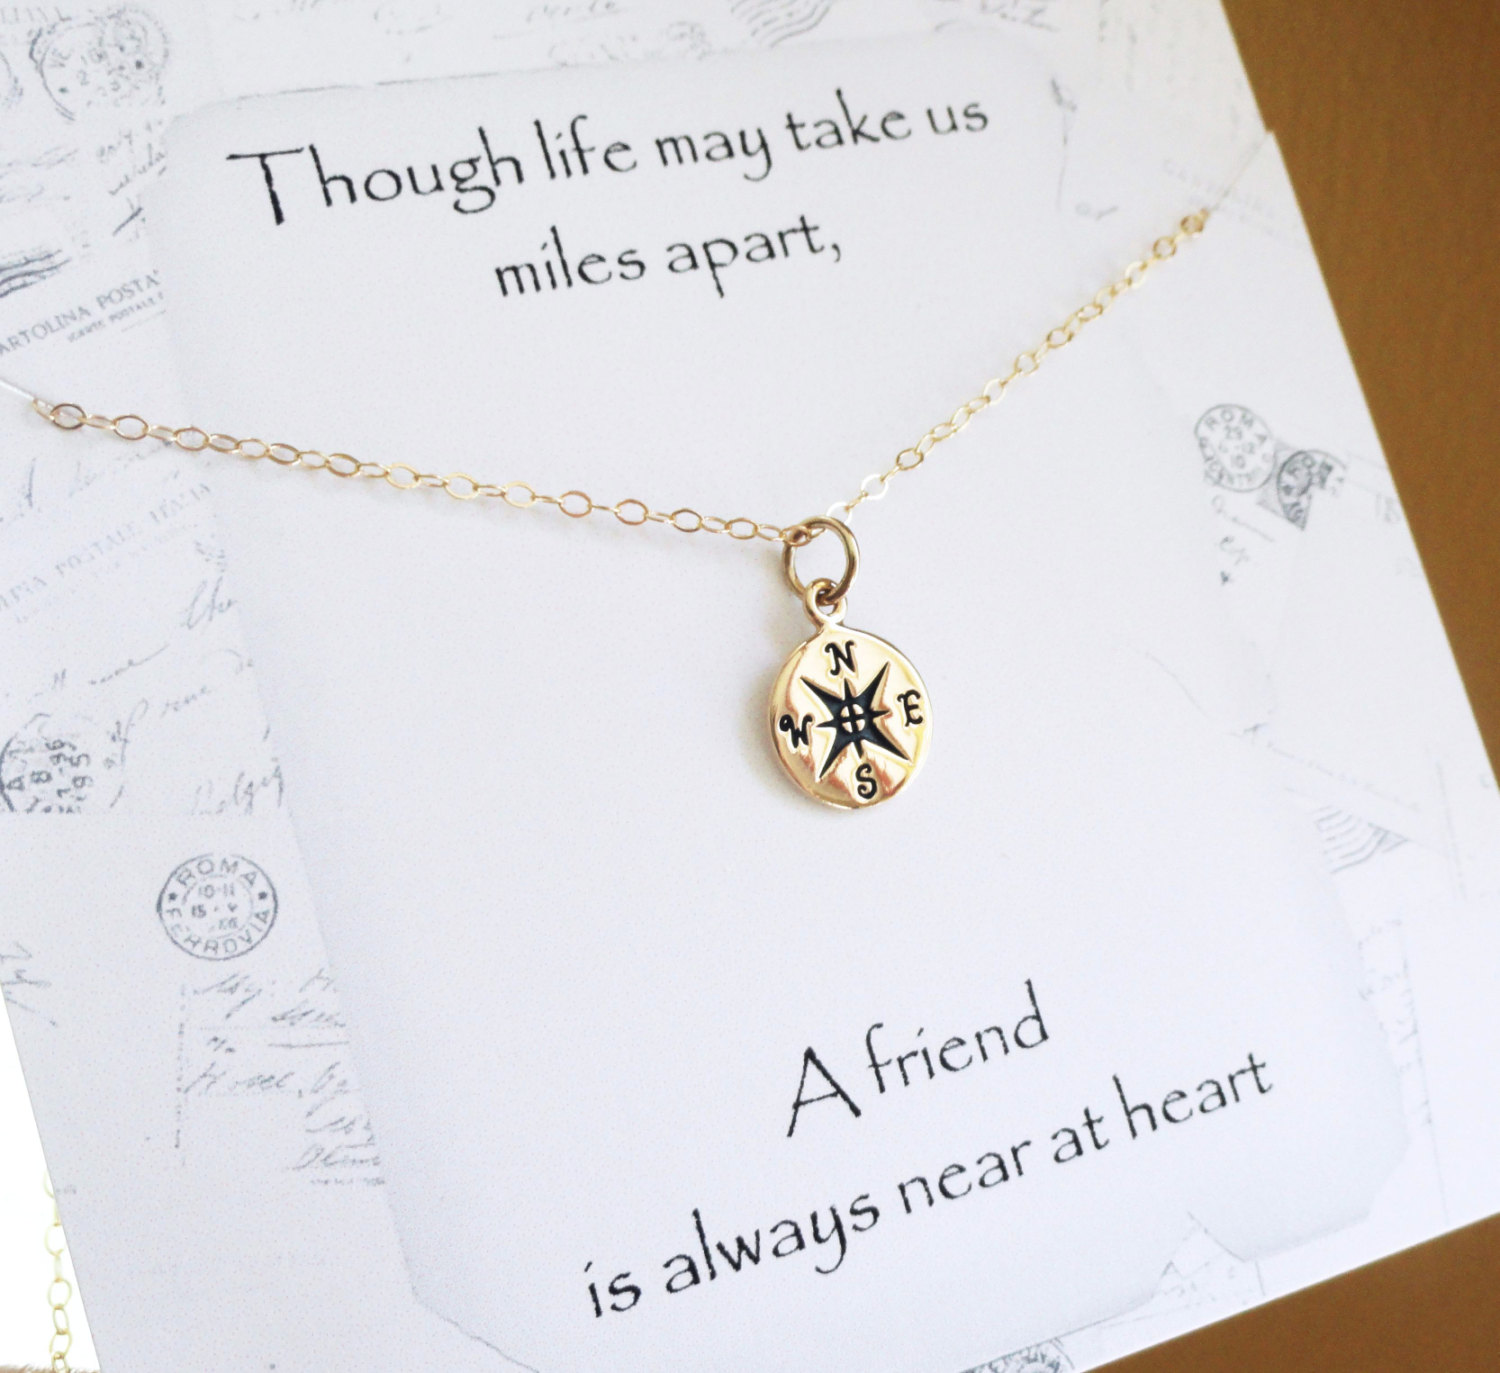 Quotes for bridesmaids gifts quotesgram Amazing christmas gifts for your best friend